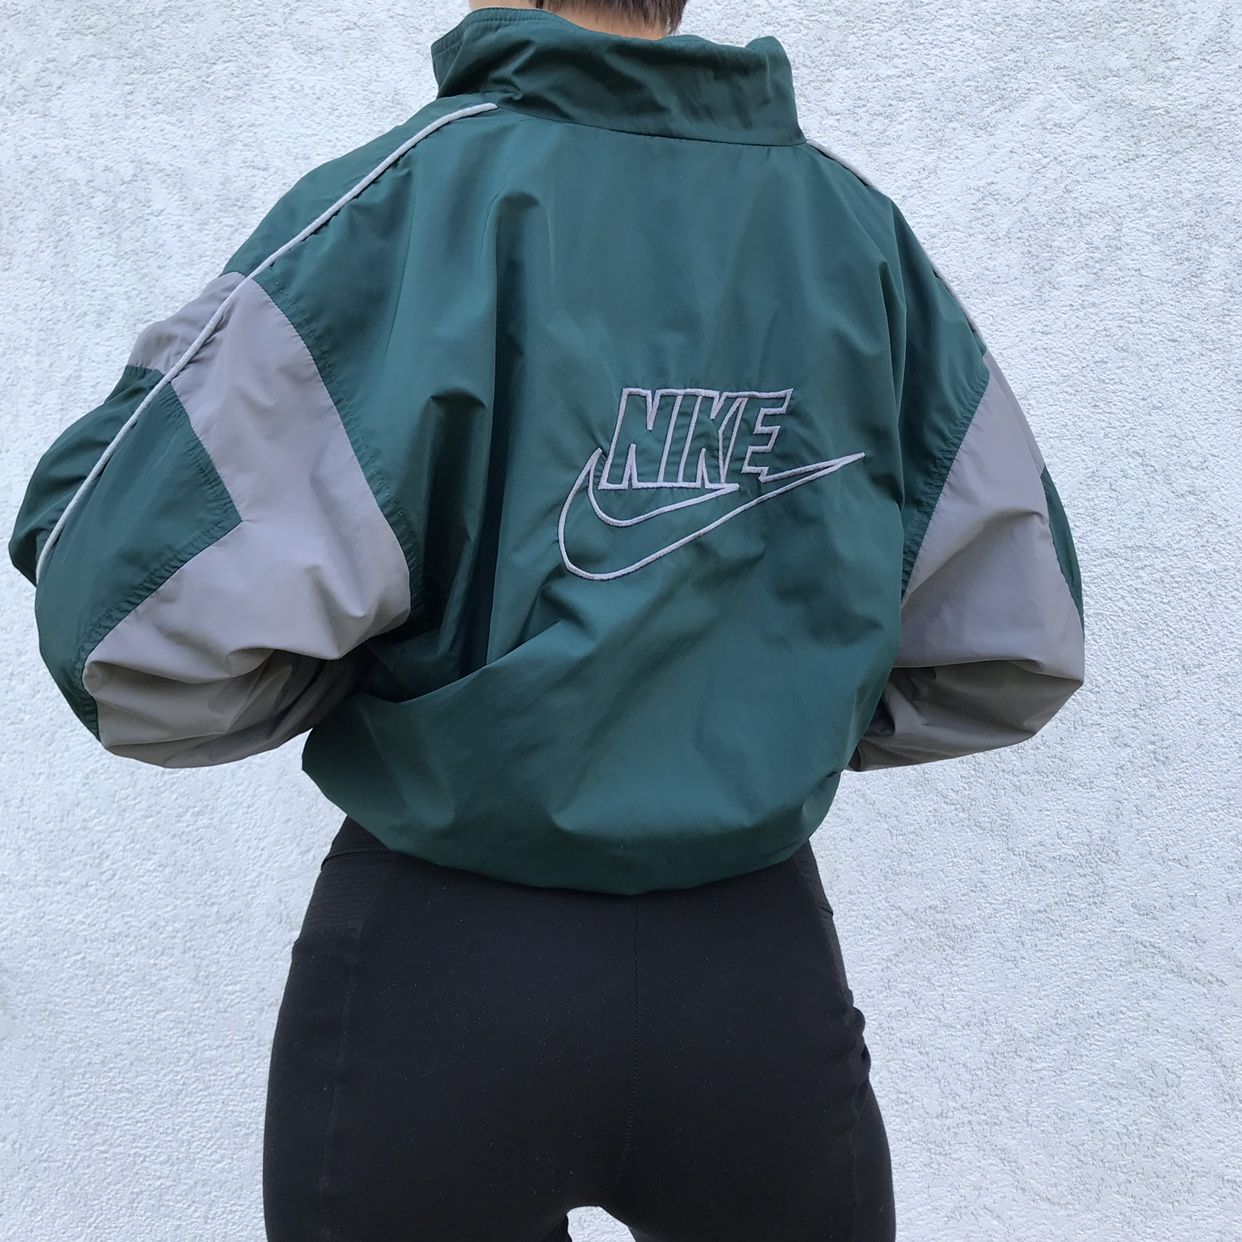 Predownload: Fresh Vintage Nike Reversible Jacket Rare Depop Sporty Outfits Retro Outfits Cute Casual Outfits [ 1242 x 1242 Pixel ]